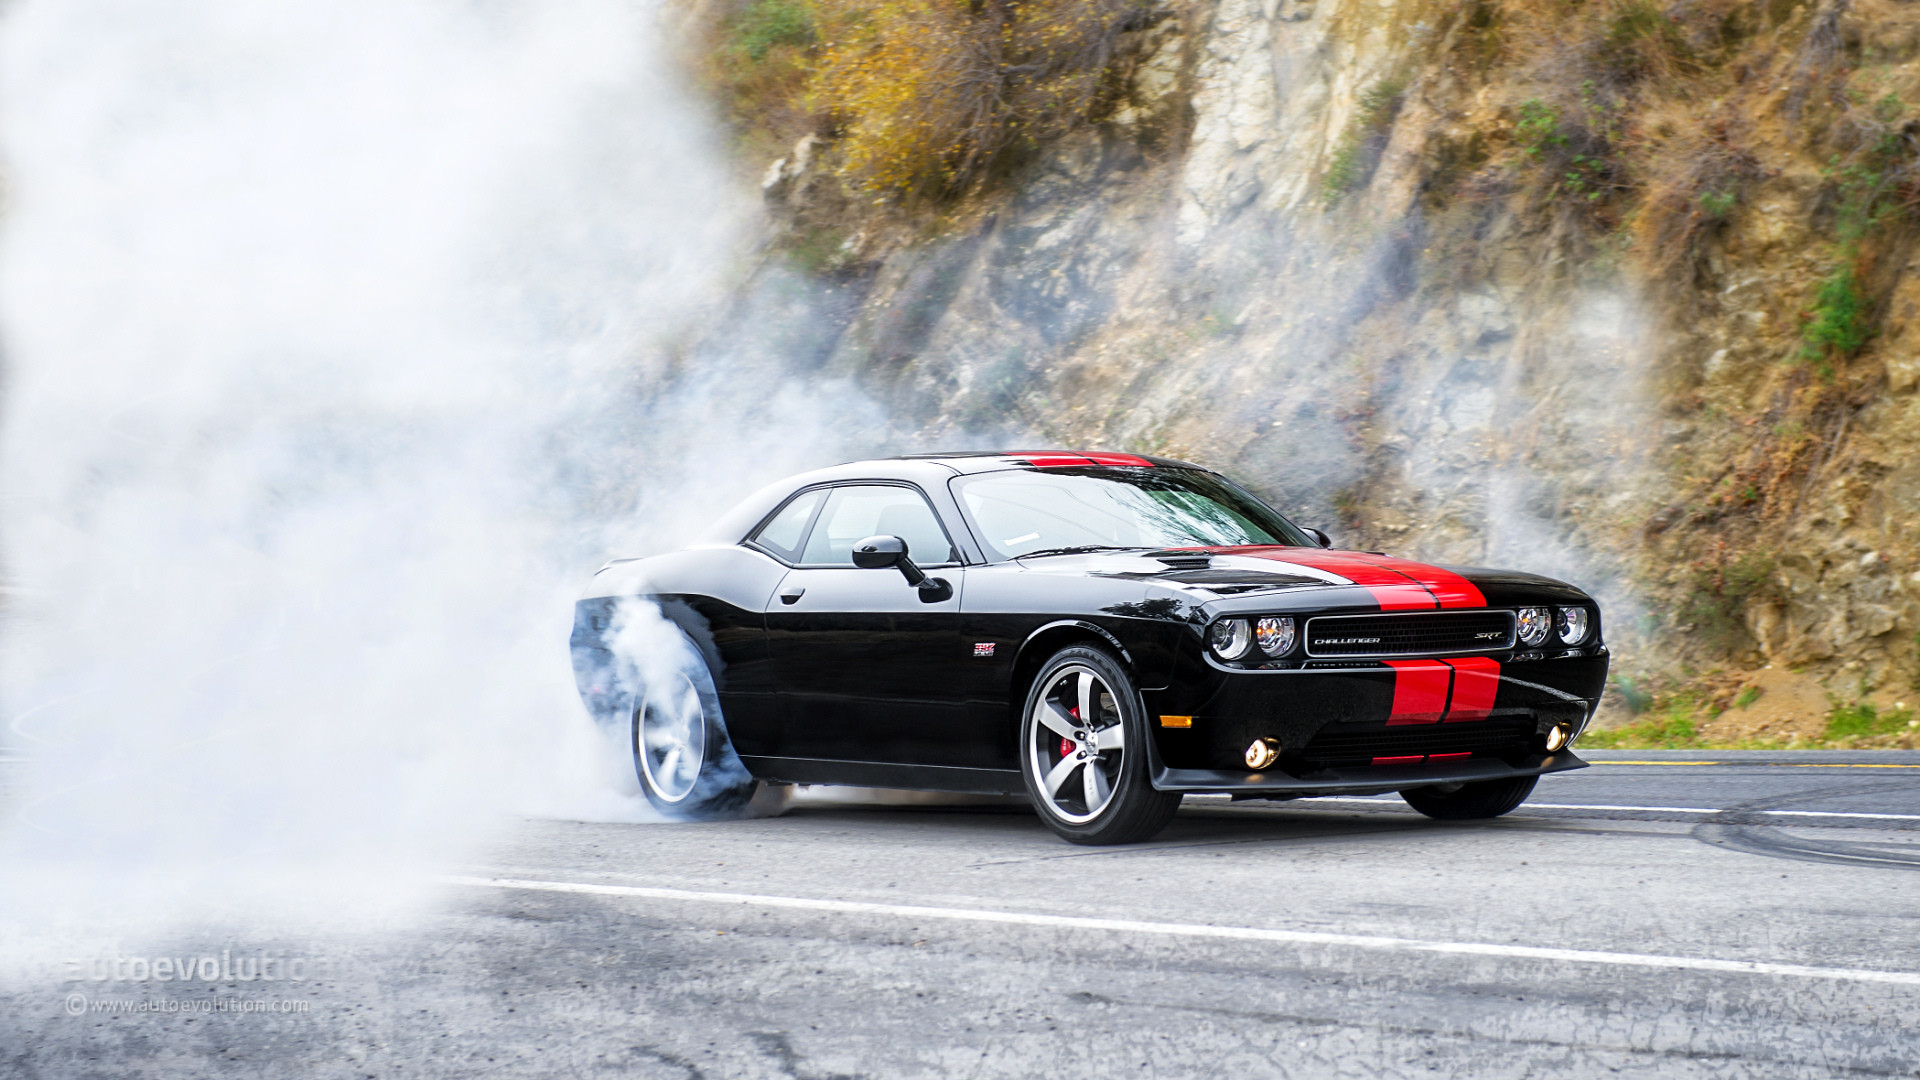 1920x1080 2015 Dodge Challenger Burnout Free Download Wallpaper - HD Wallpaper